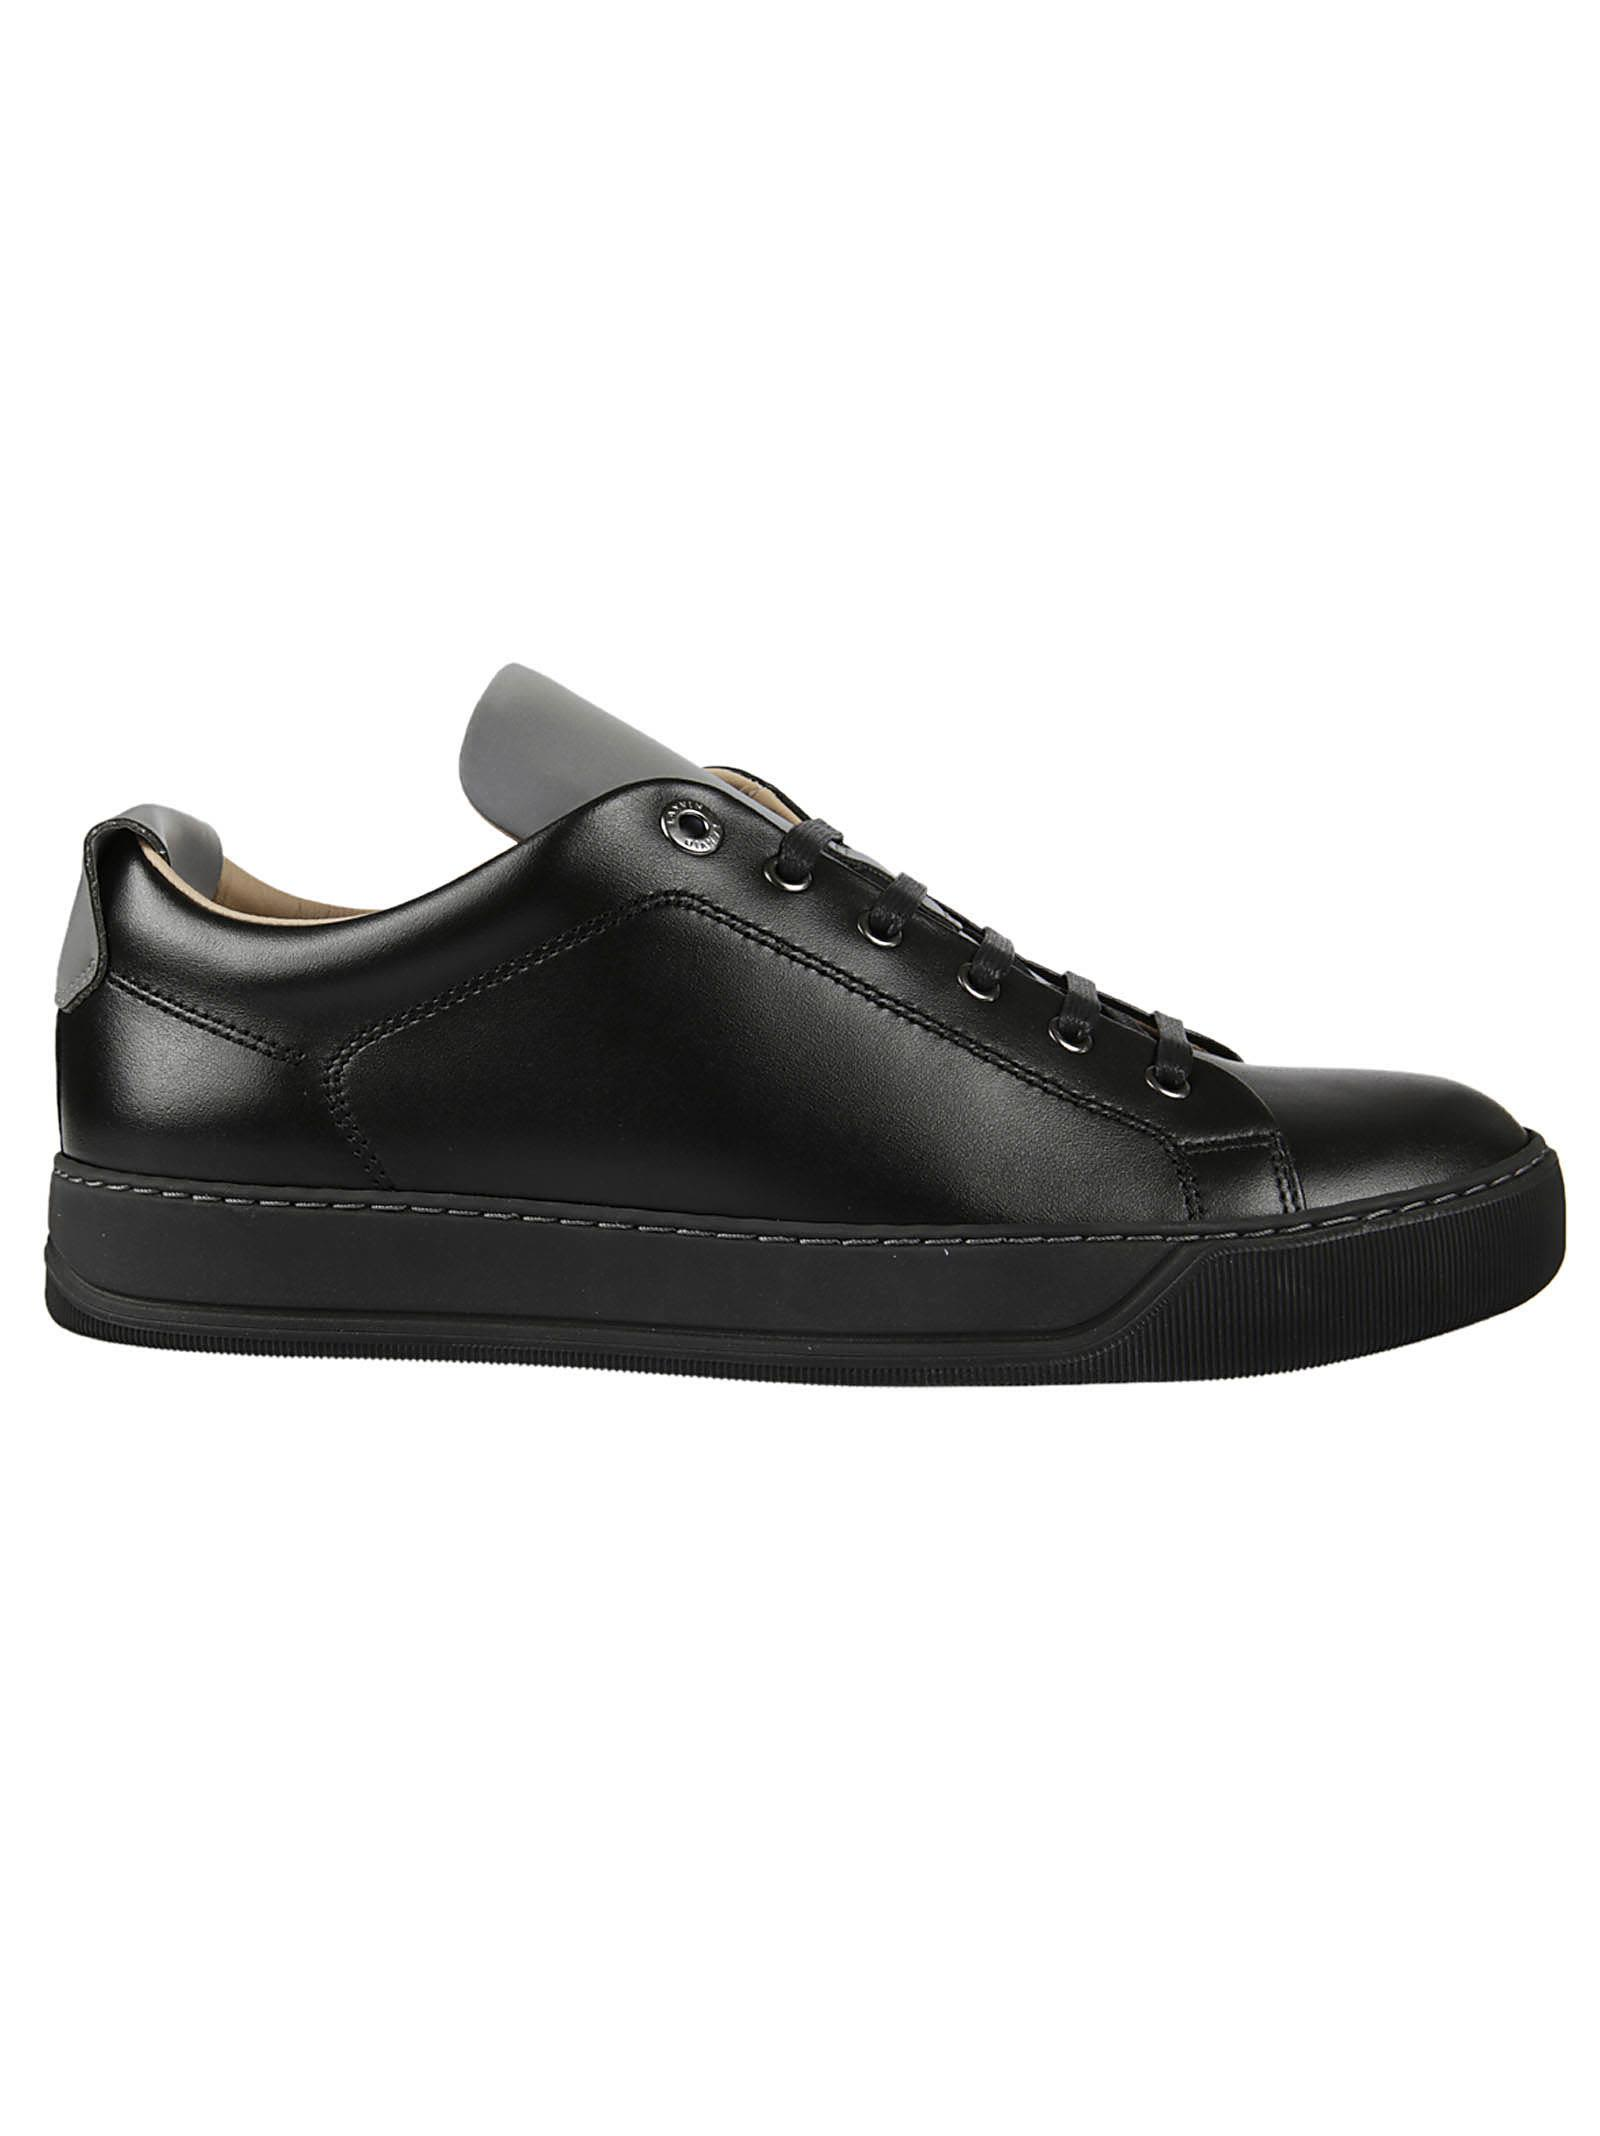 Lanvin Contrast Tongue Sneakers